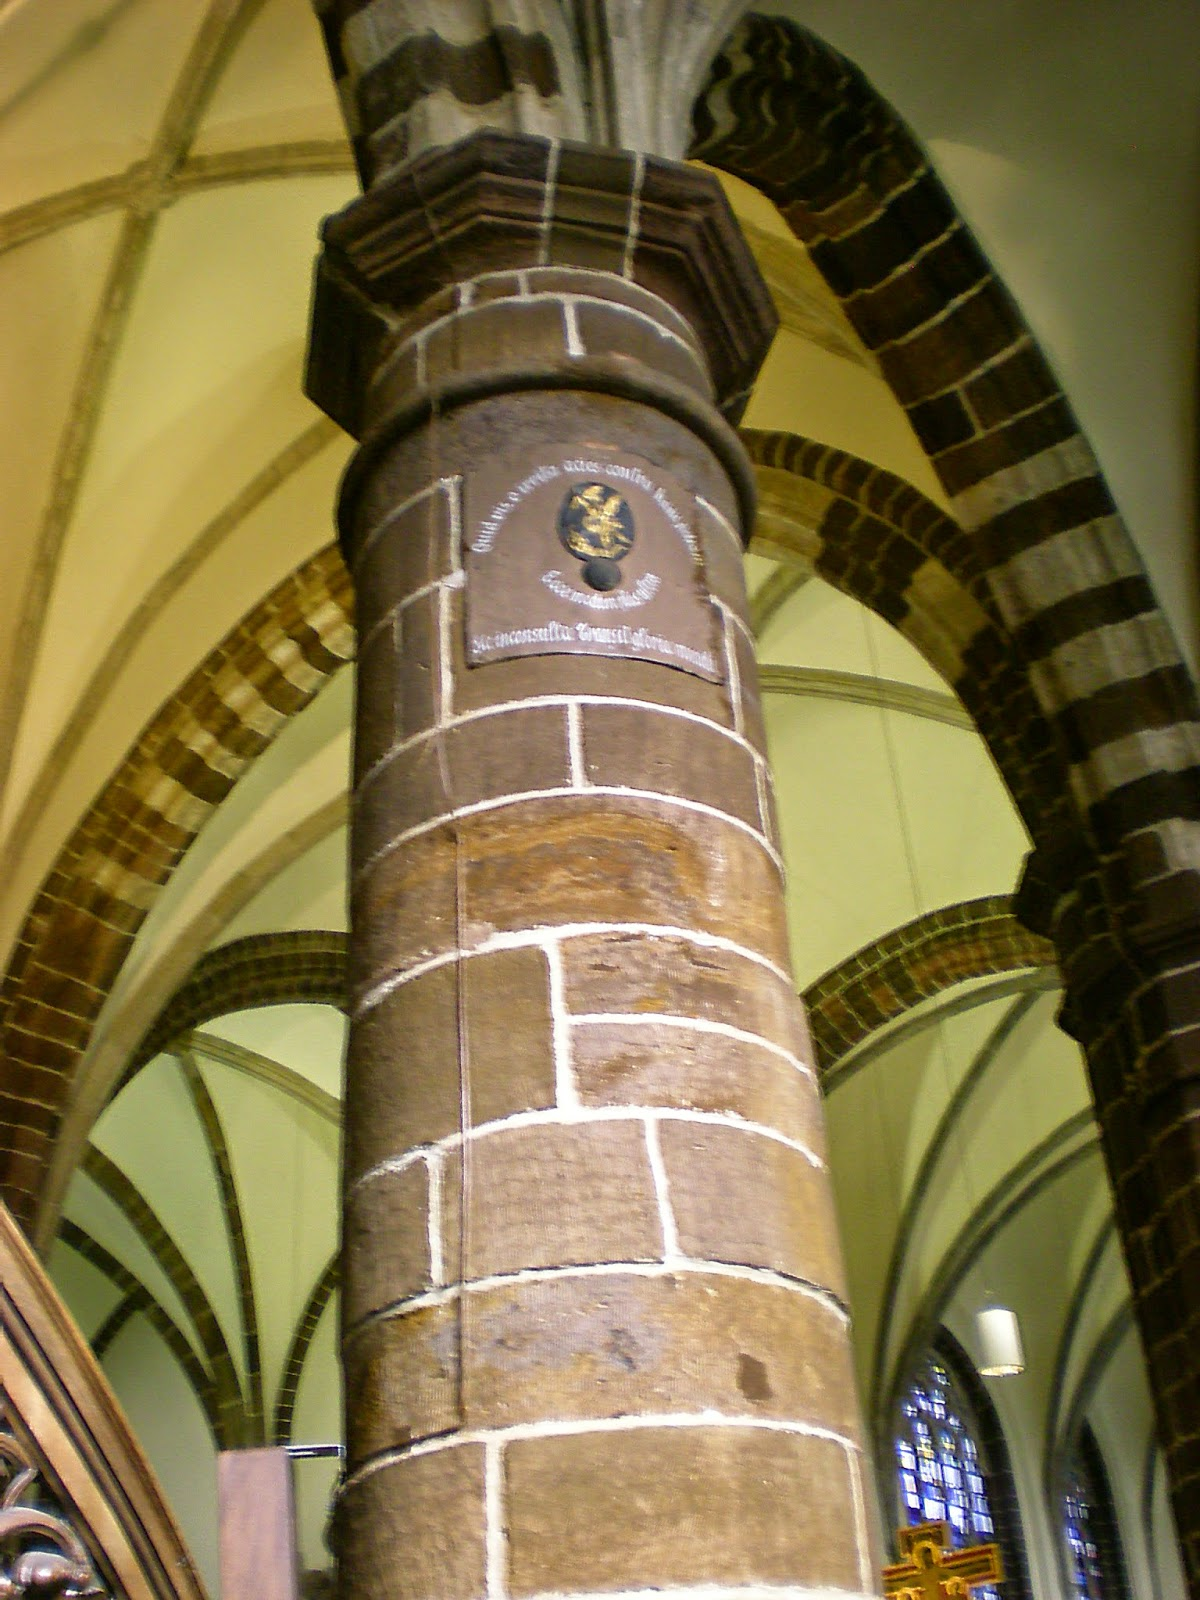 The pillar of St John-the-Baptist Church still has a cannonball embedded in one of the pillars